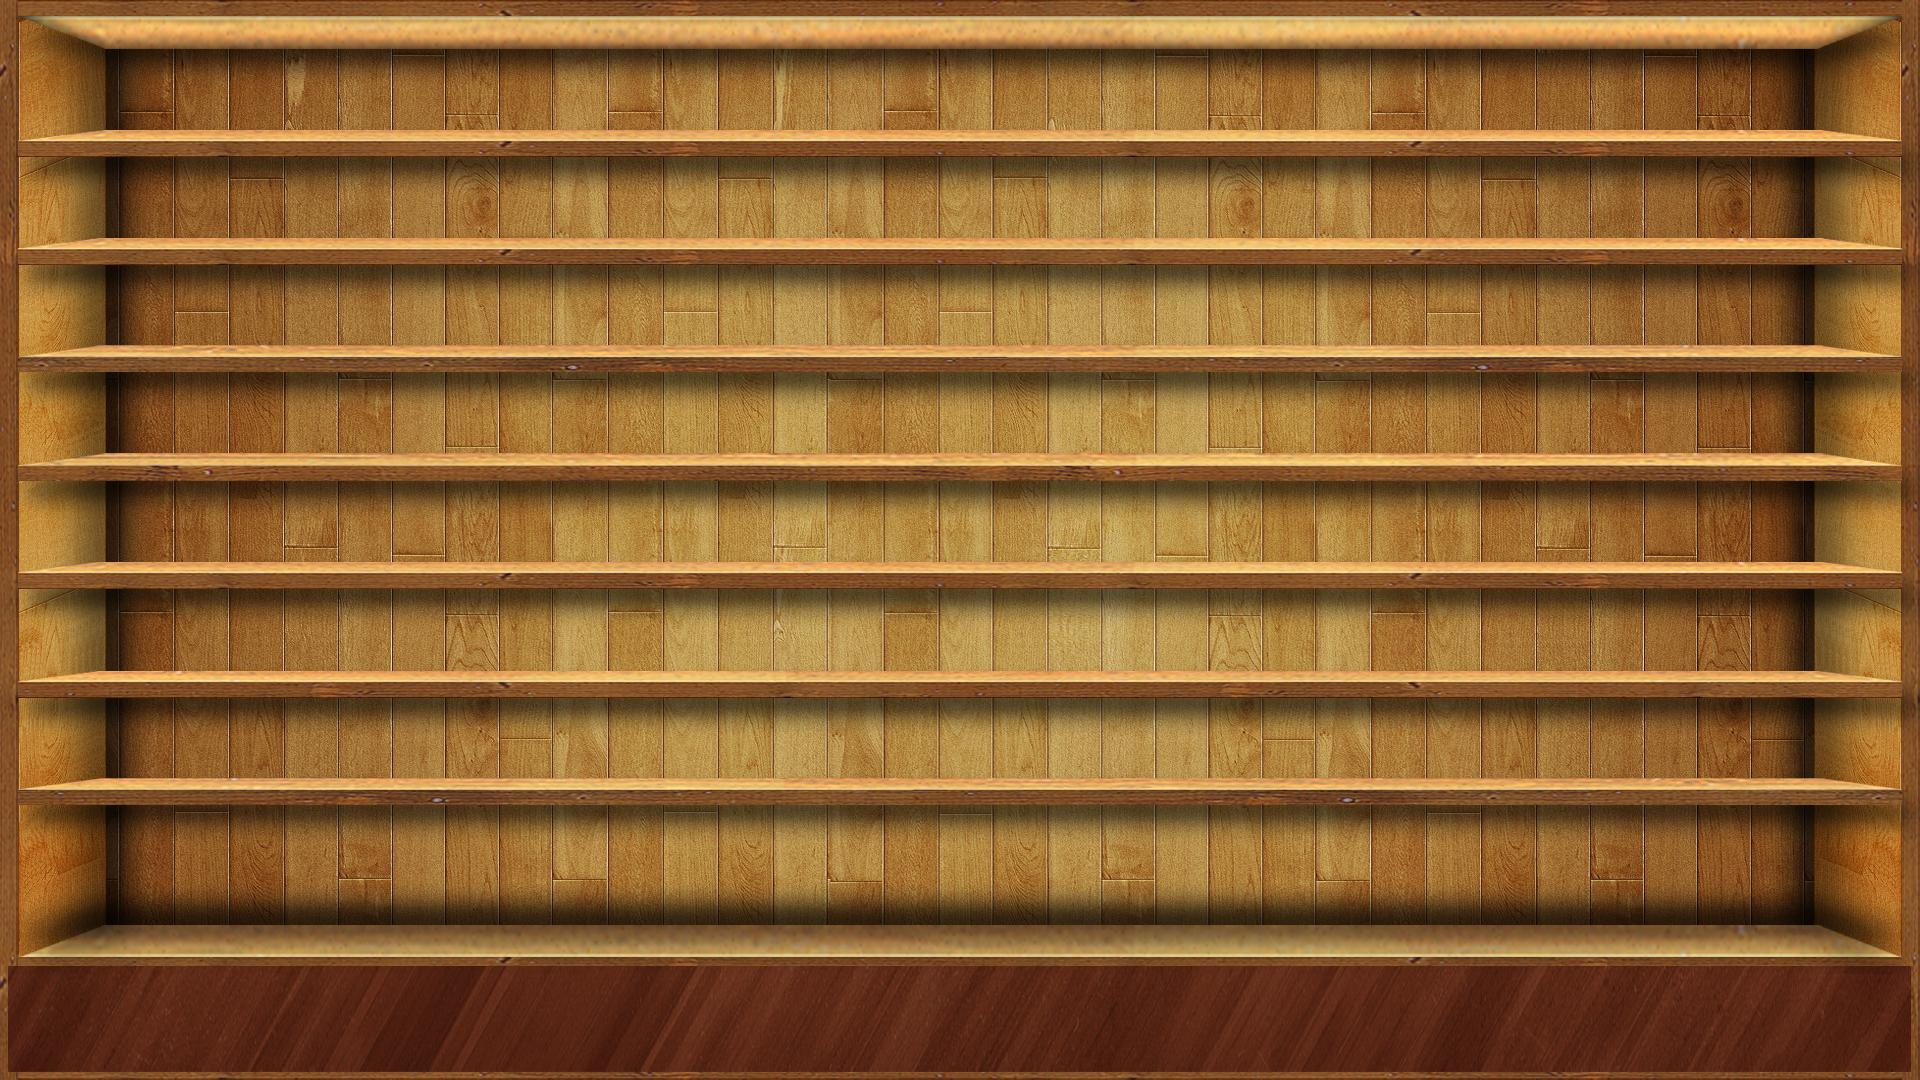 Shelf Wallpaper